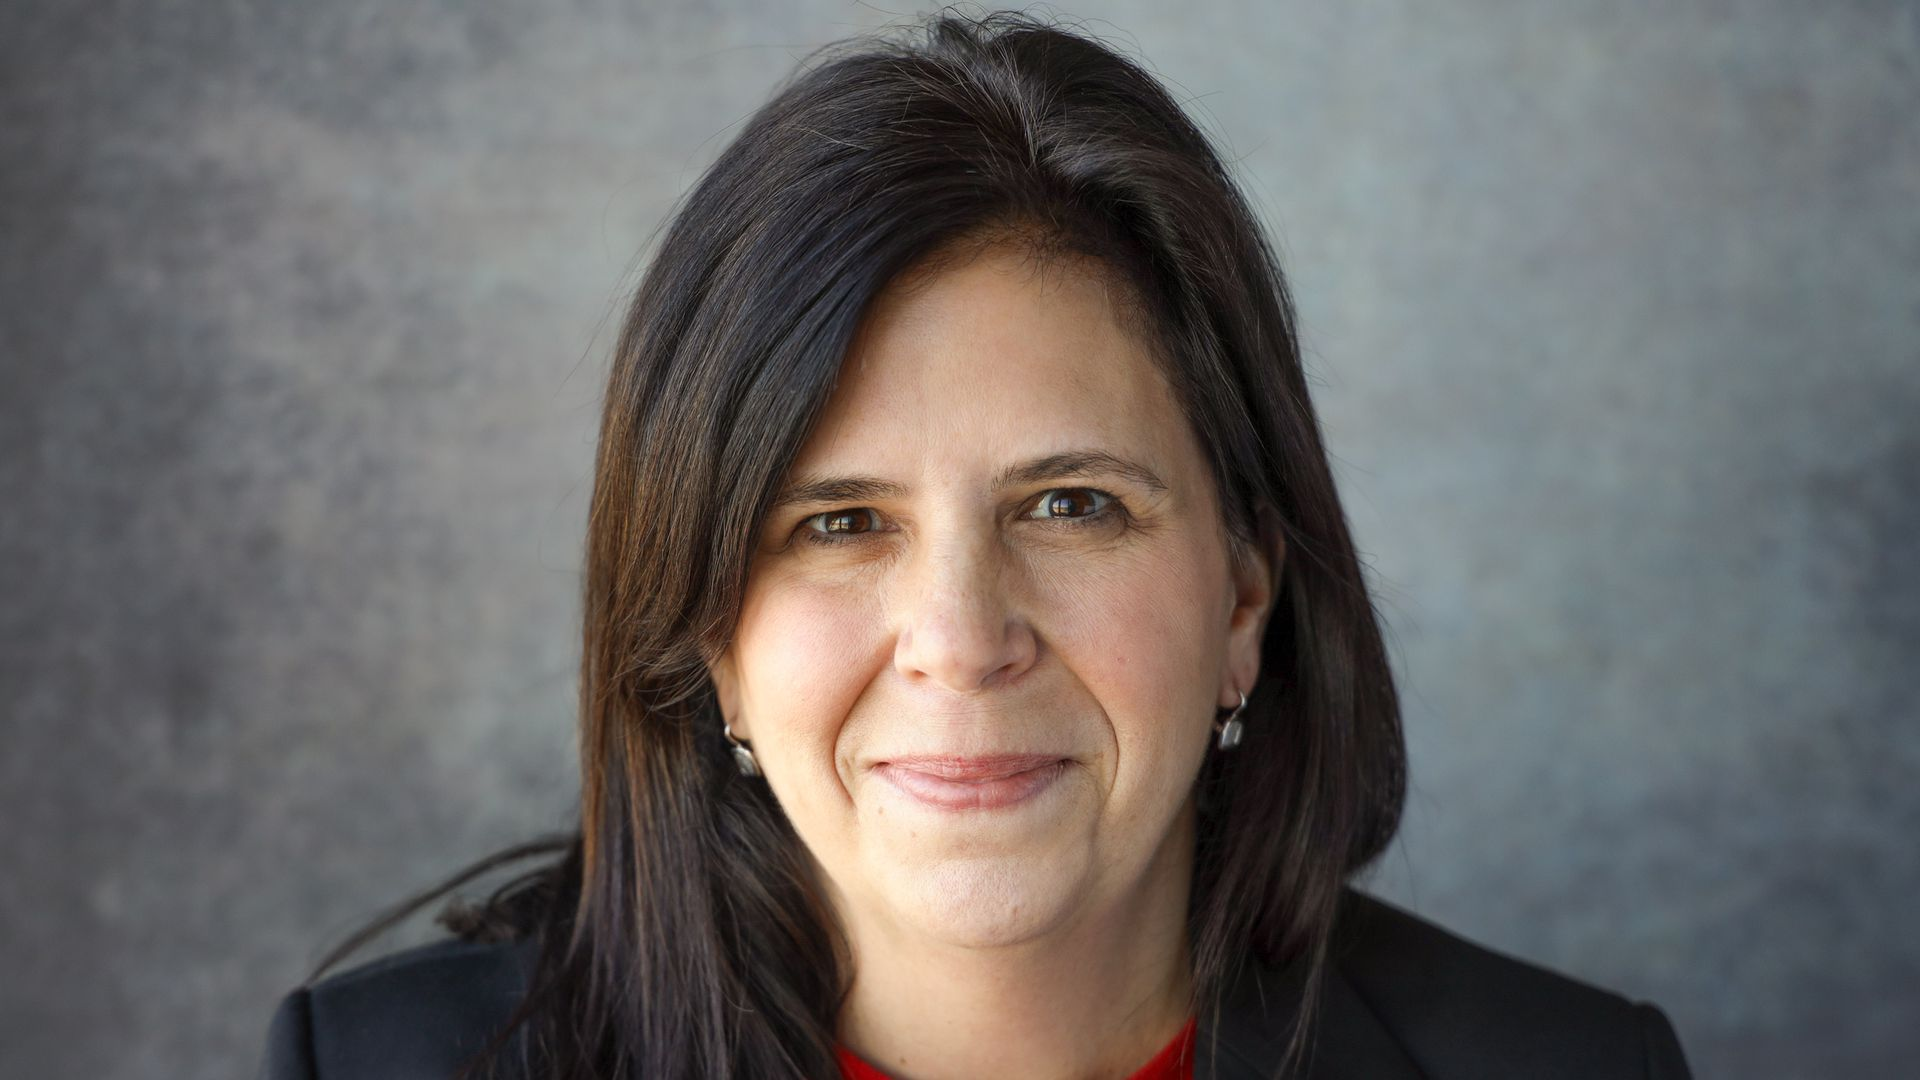 A headshot of Laura Bishop, who resigned as commissioner of the Minnesota Pollution Control Agency Tuesday.